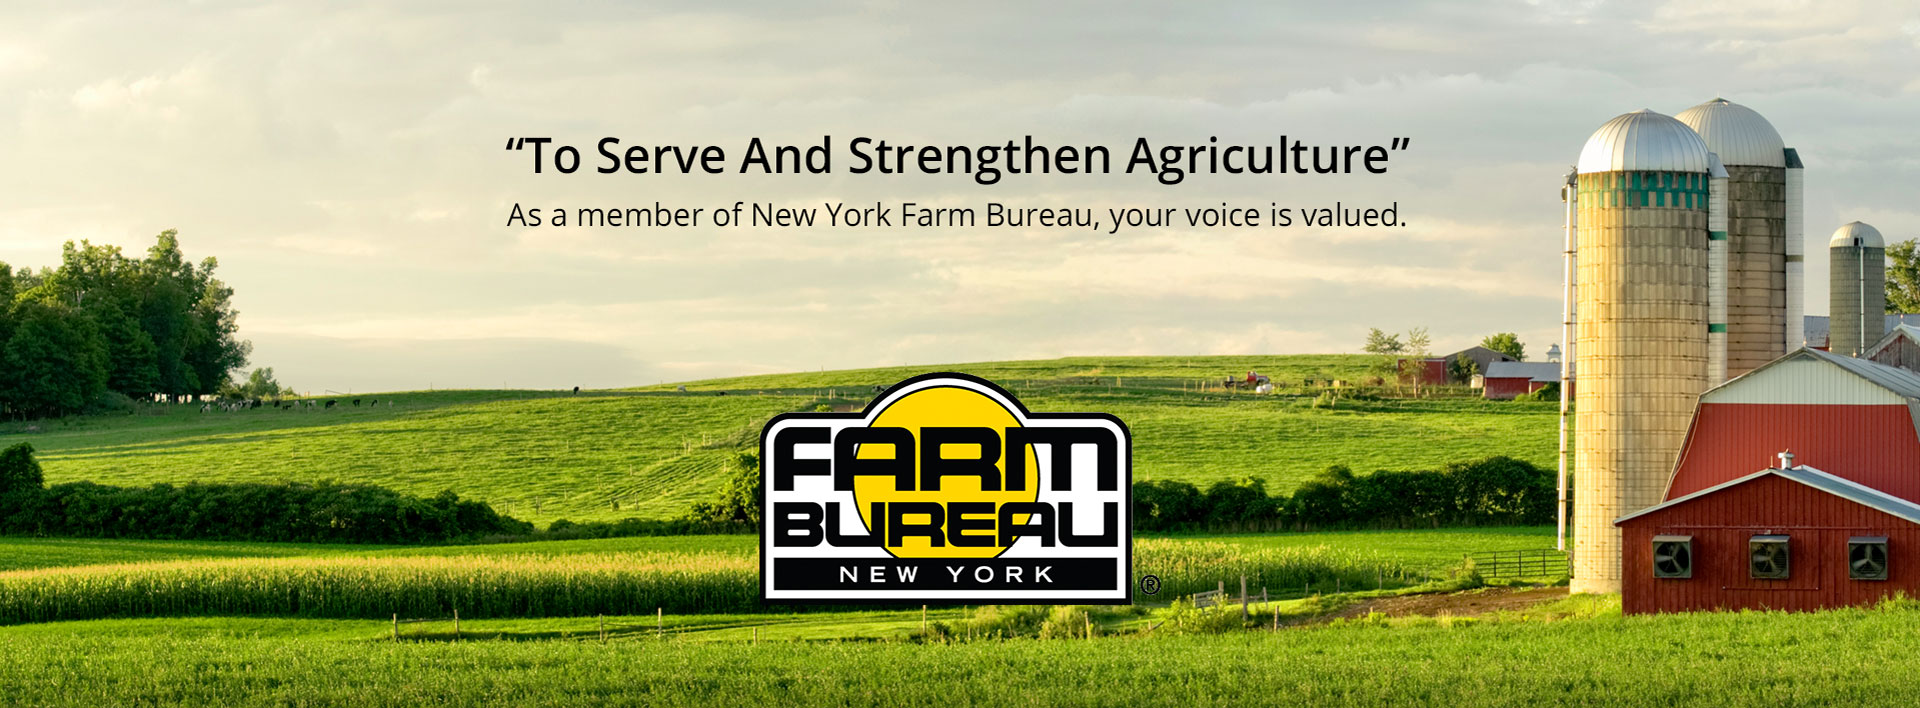 Home New York Farm Bureau